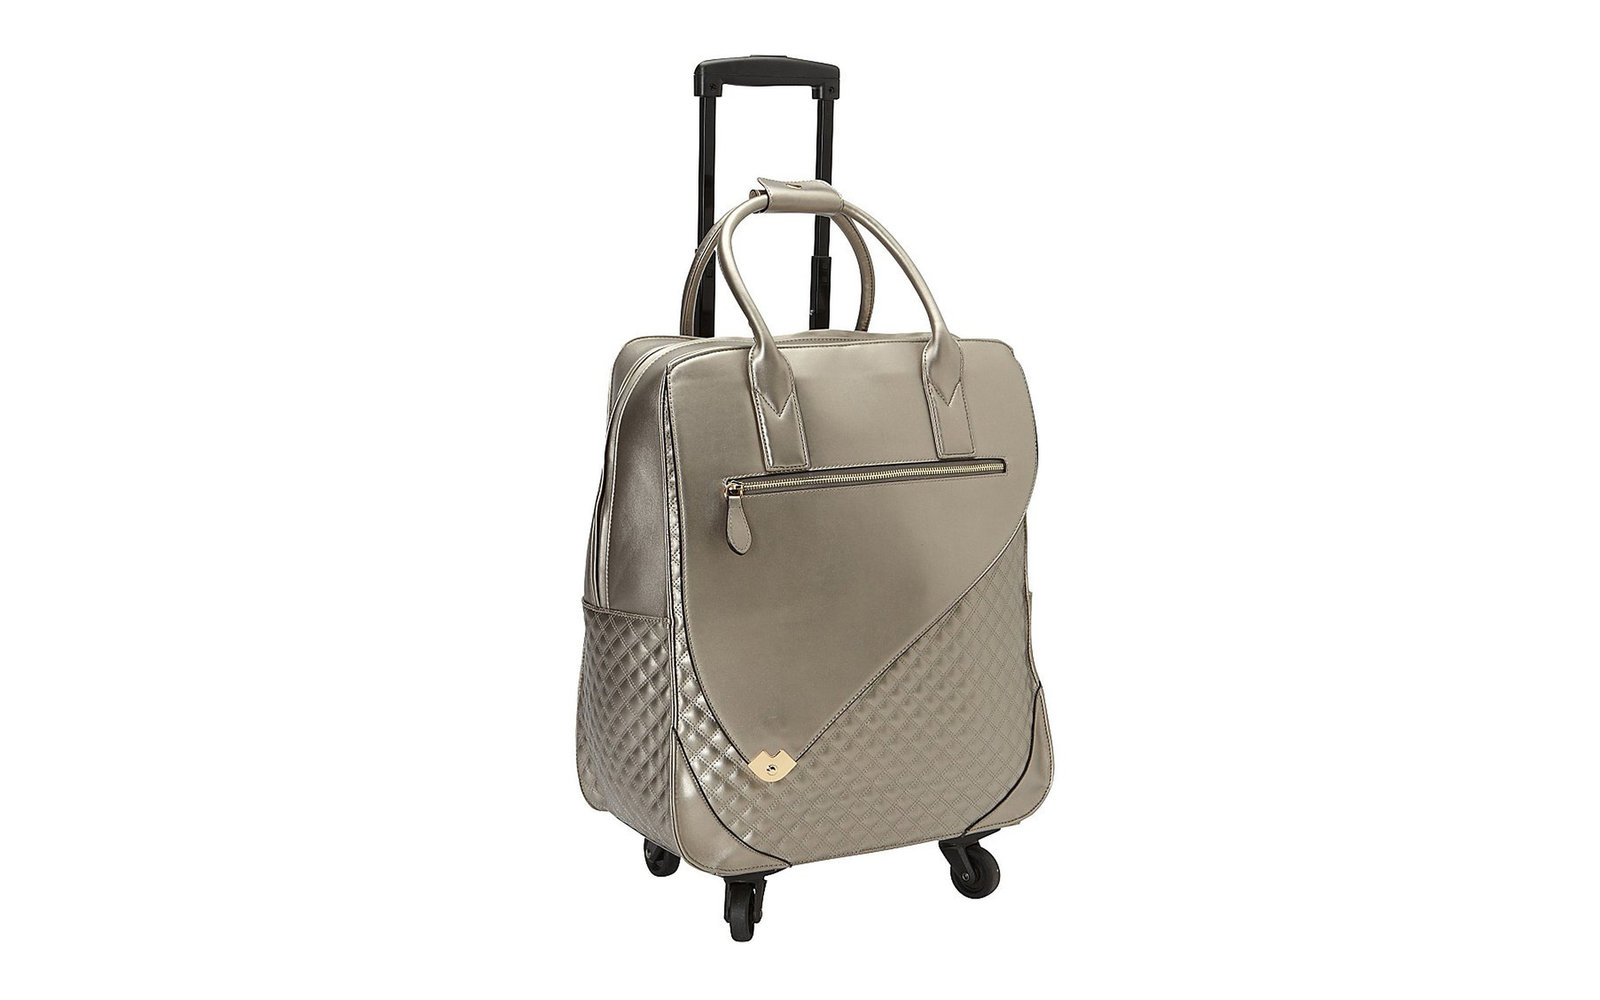 Hang Accessories Metallic 360 Rolling Bag in Champagne